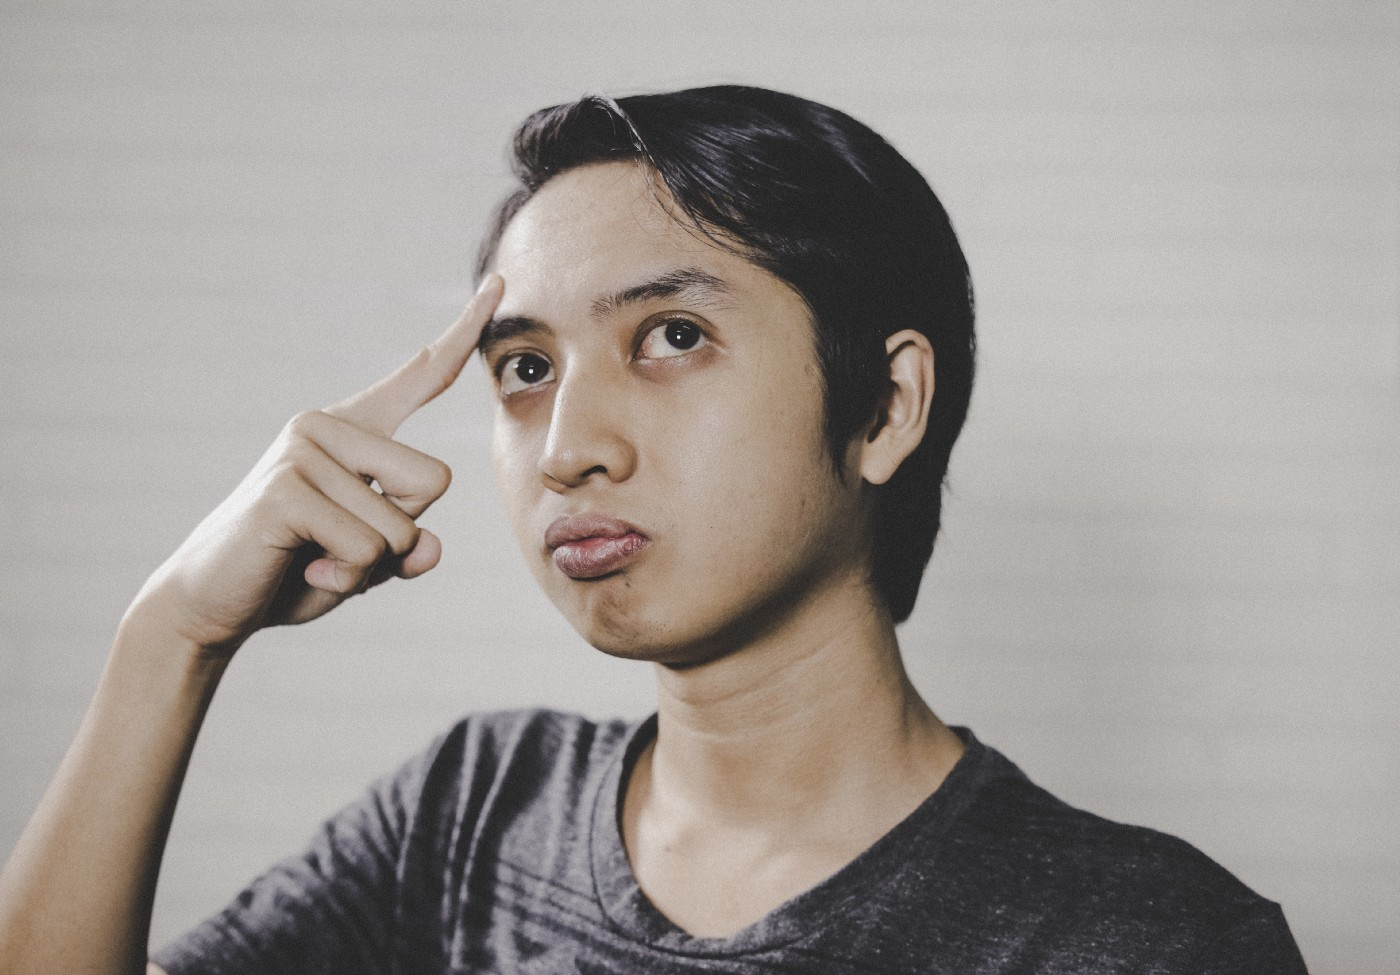 person in a pose that suggests they're considering alternatives